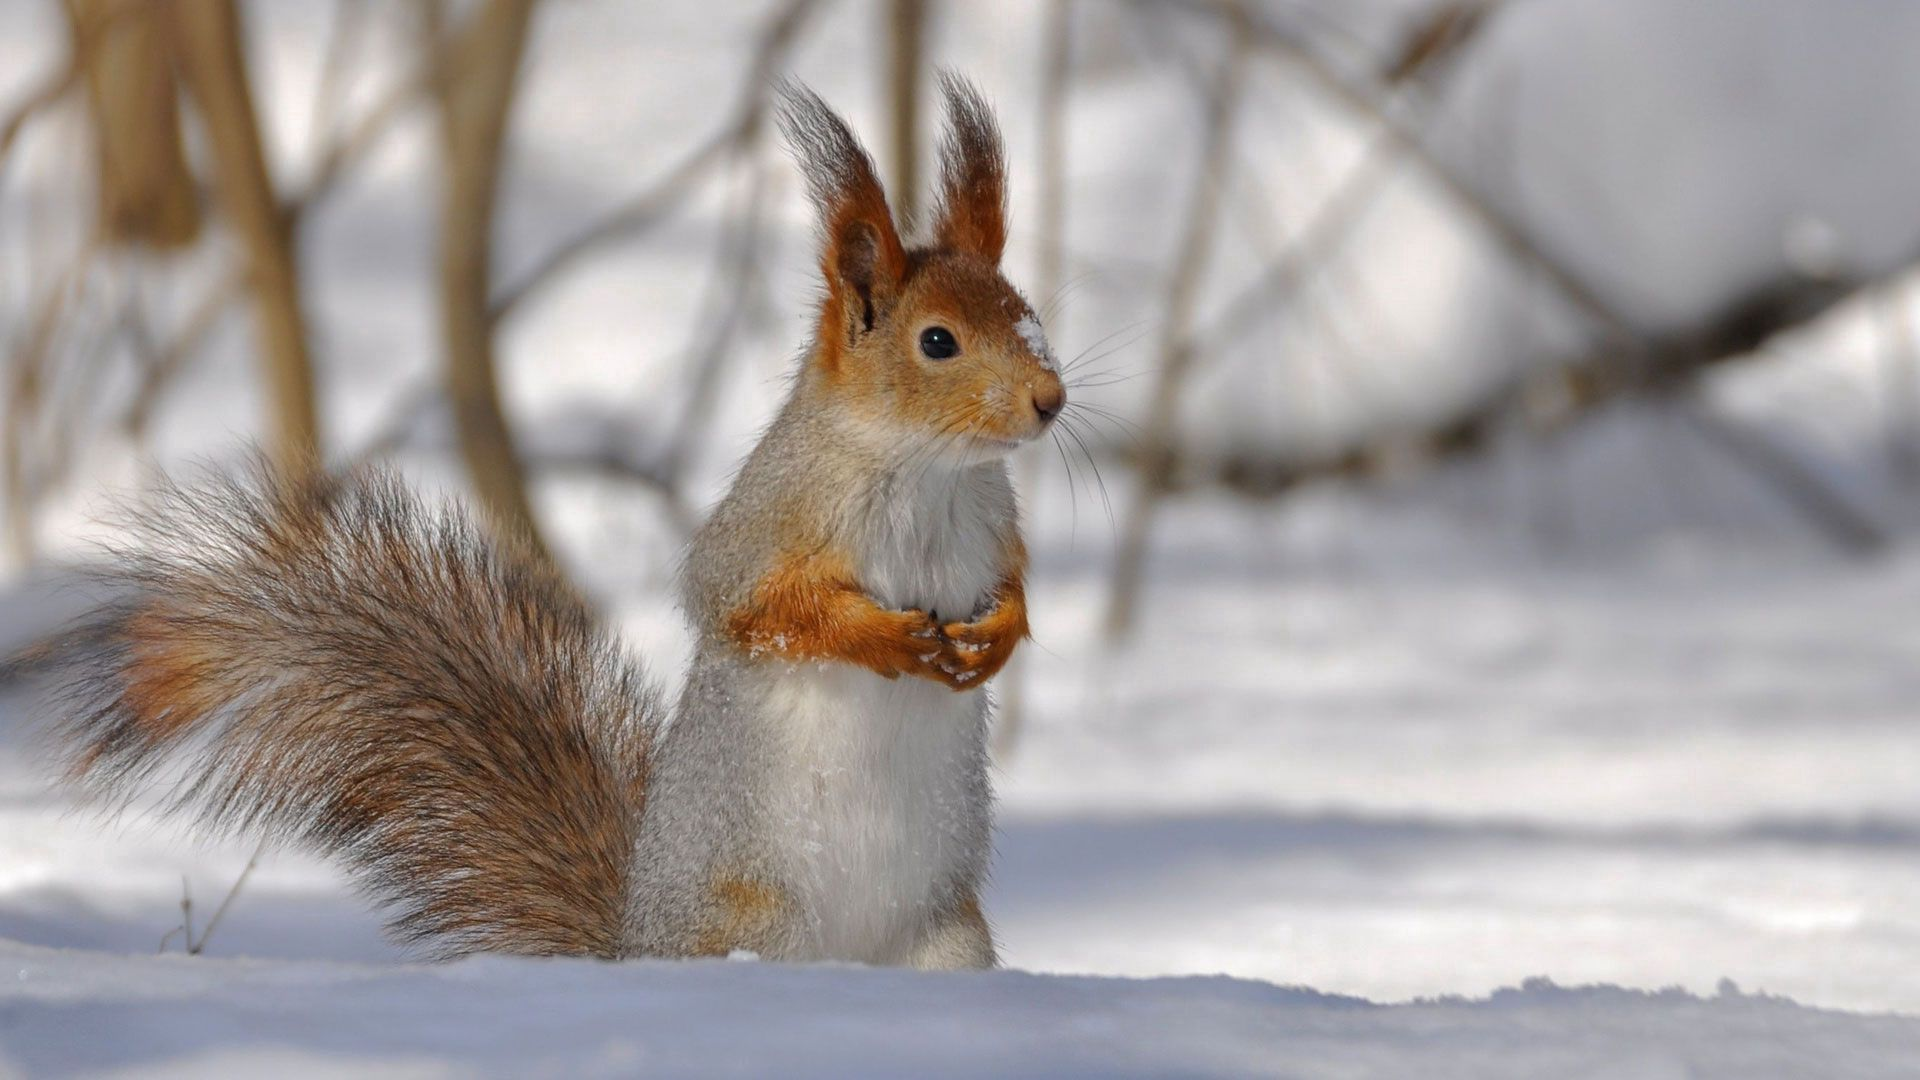 58571 download wallpaper Animals, Winter, Squirrel, Snow, Branches, Tail screensavers and pictures for free